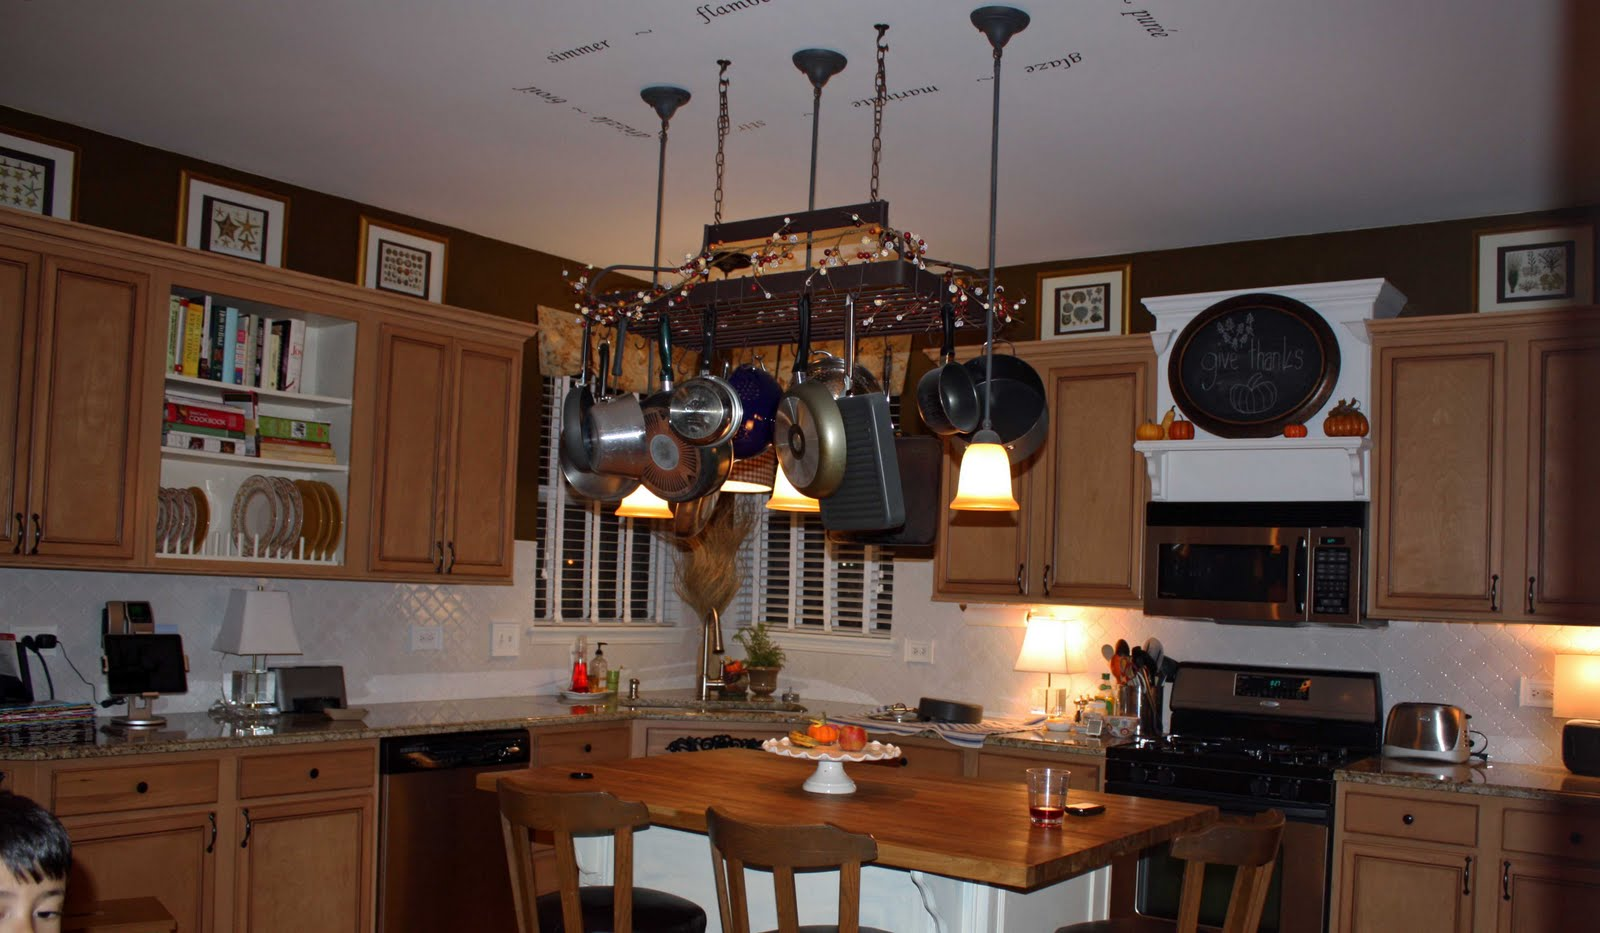 Transforming Home.: Above the kitchen cabinets